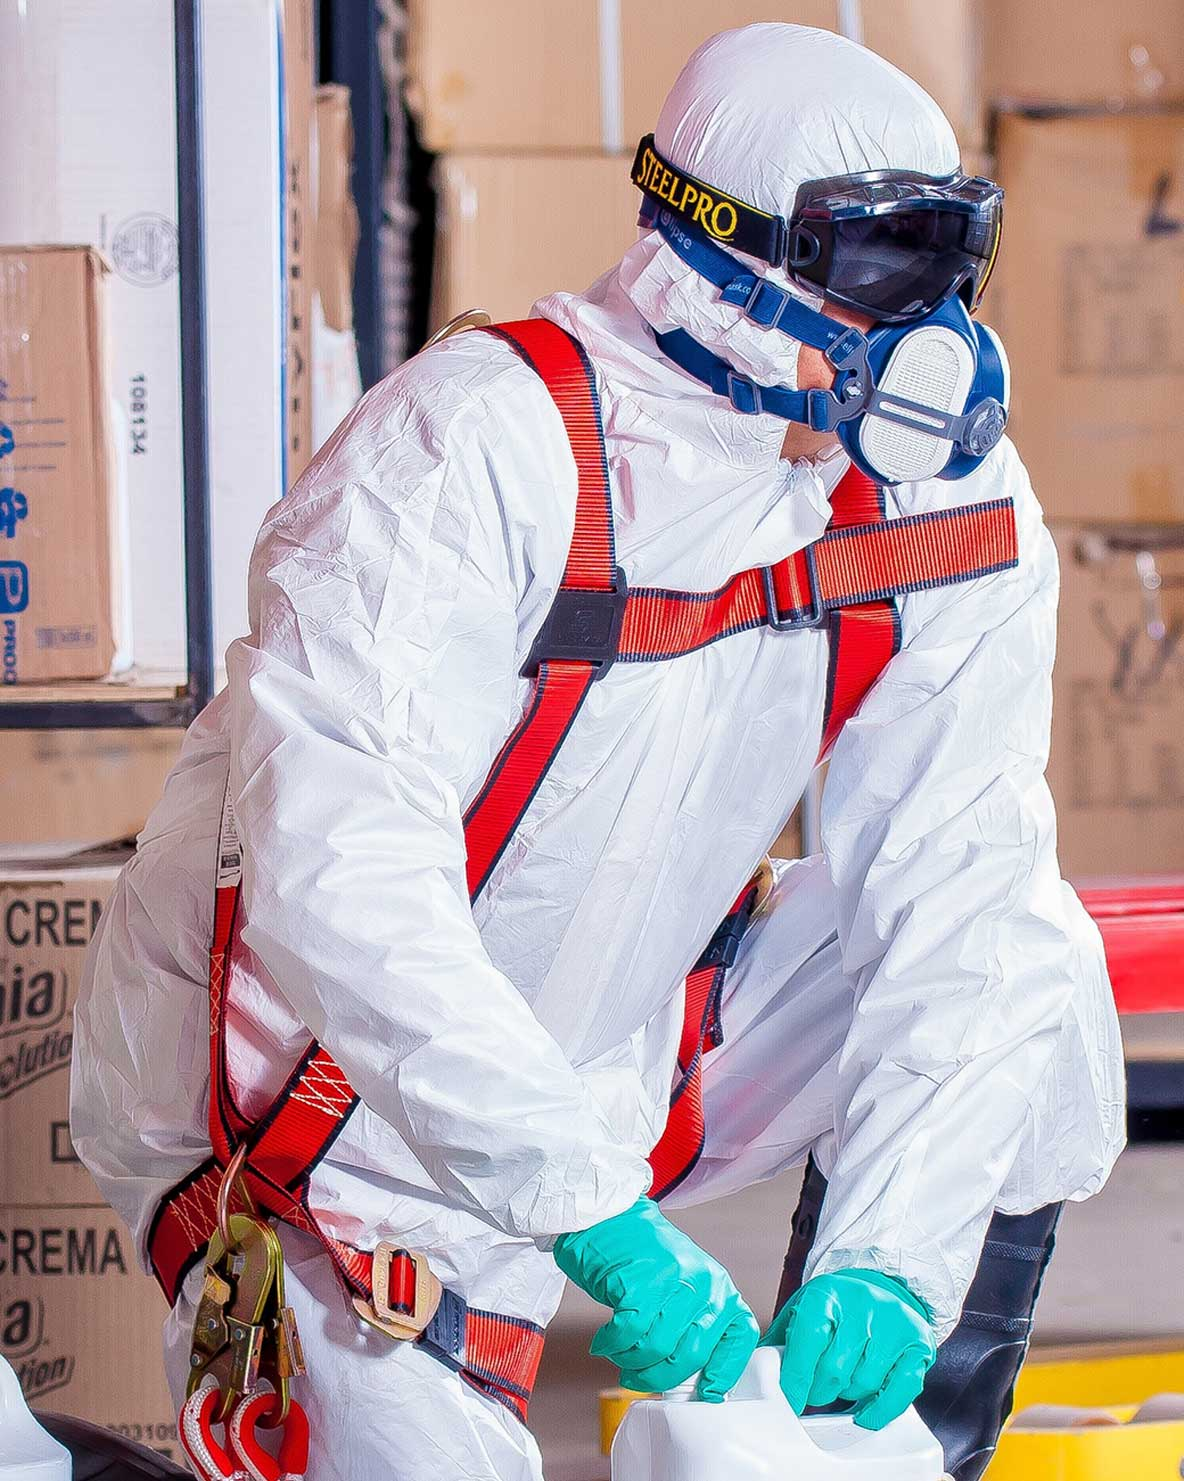 Virus cleaning protective clothing